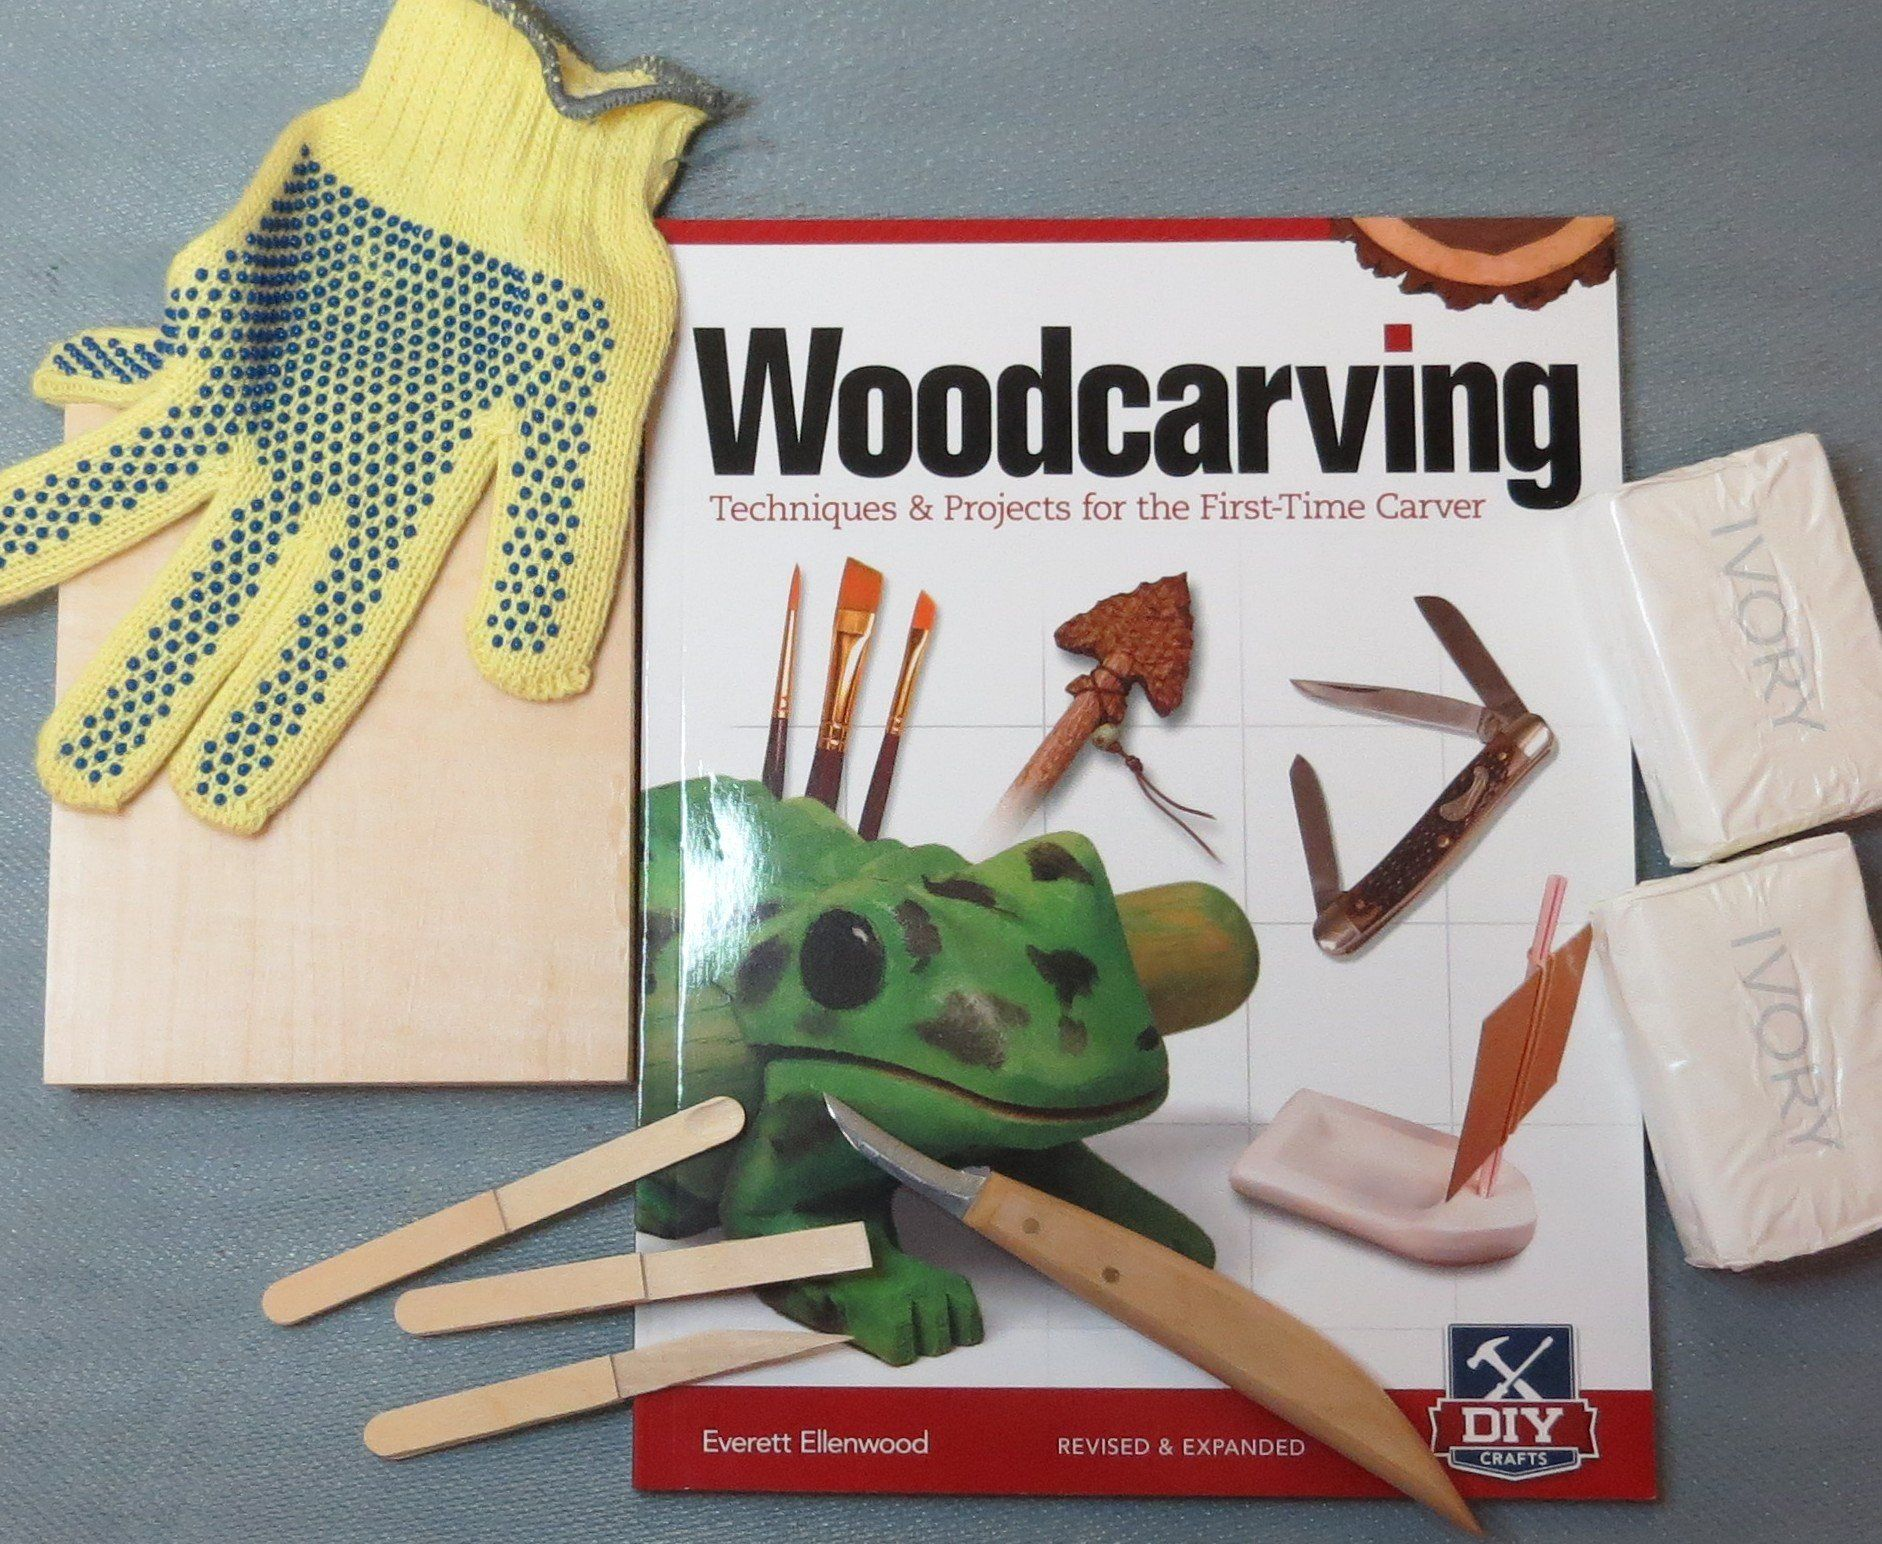 Kid Crafts Woodcarving Kit (that uses soap instead of wood